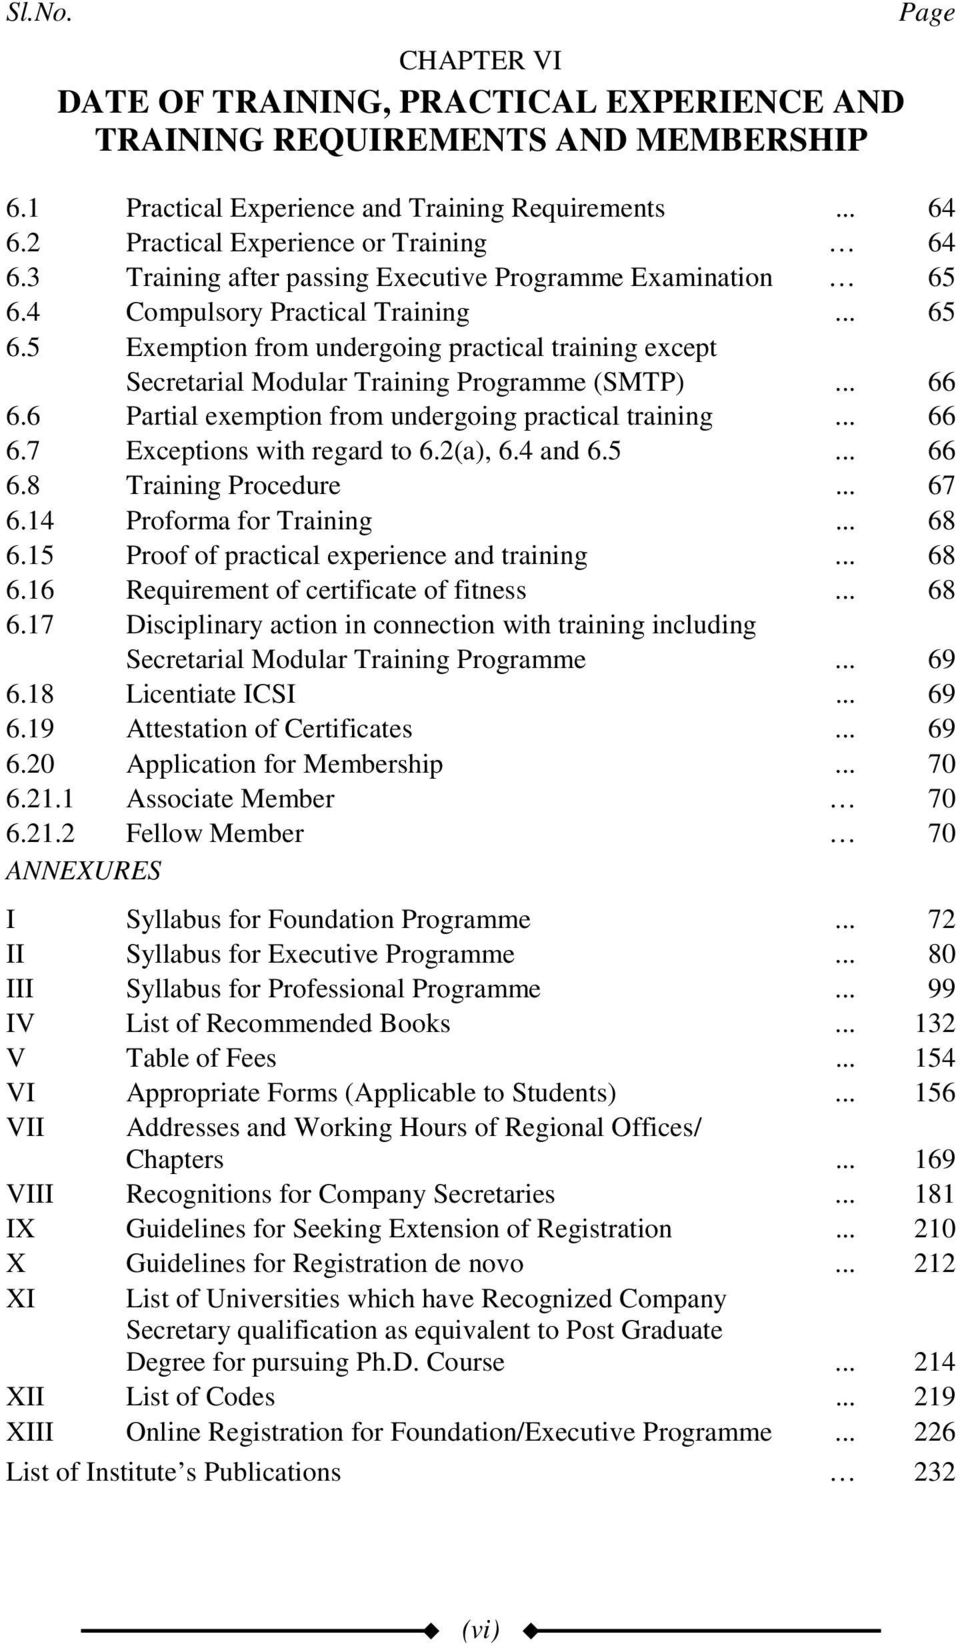 4 Compulsory Practical Training... 65 6.5 Exemption from undergoing practical training except Secretarial Modular Training Programme (SMTP)... 66 6.